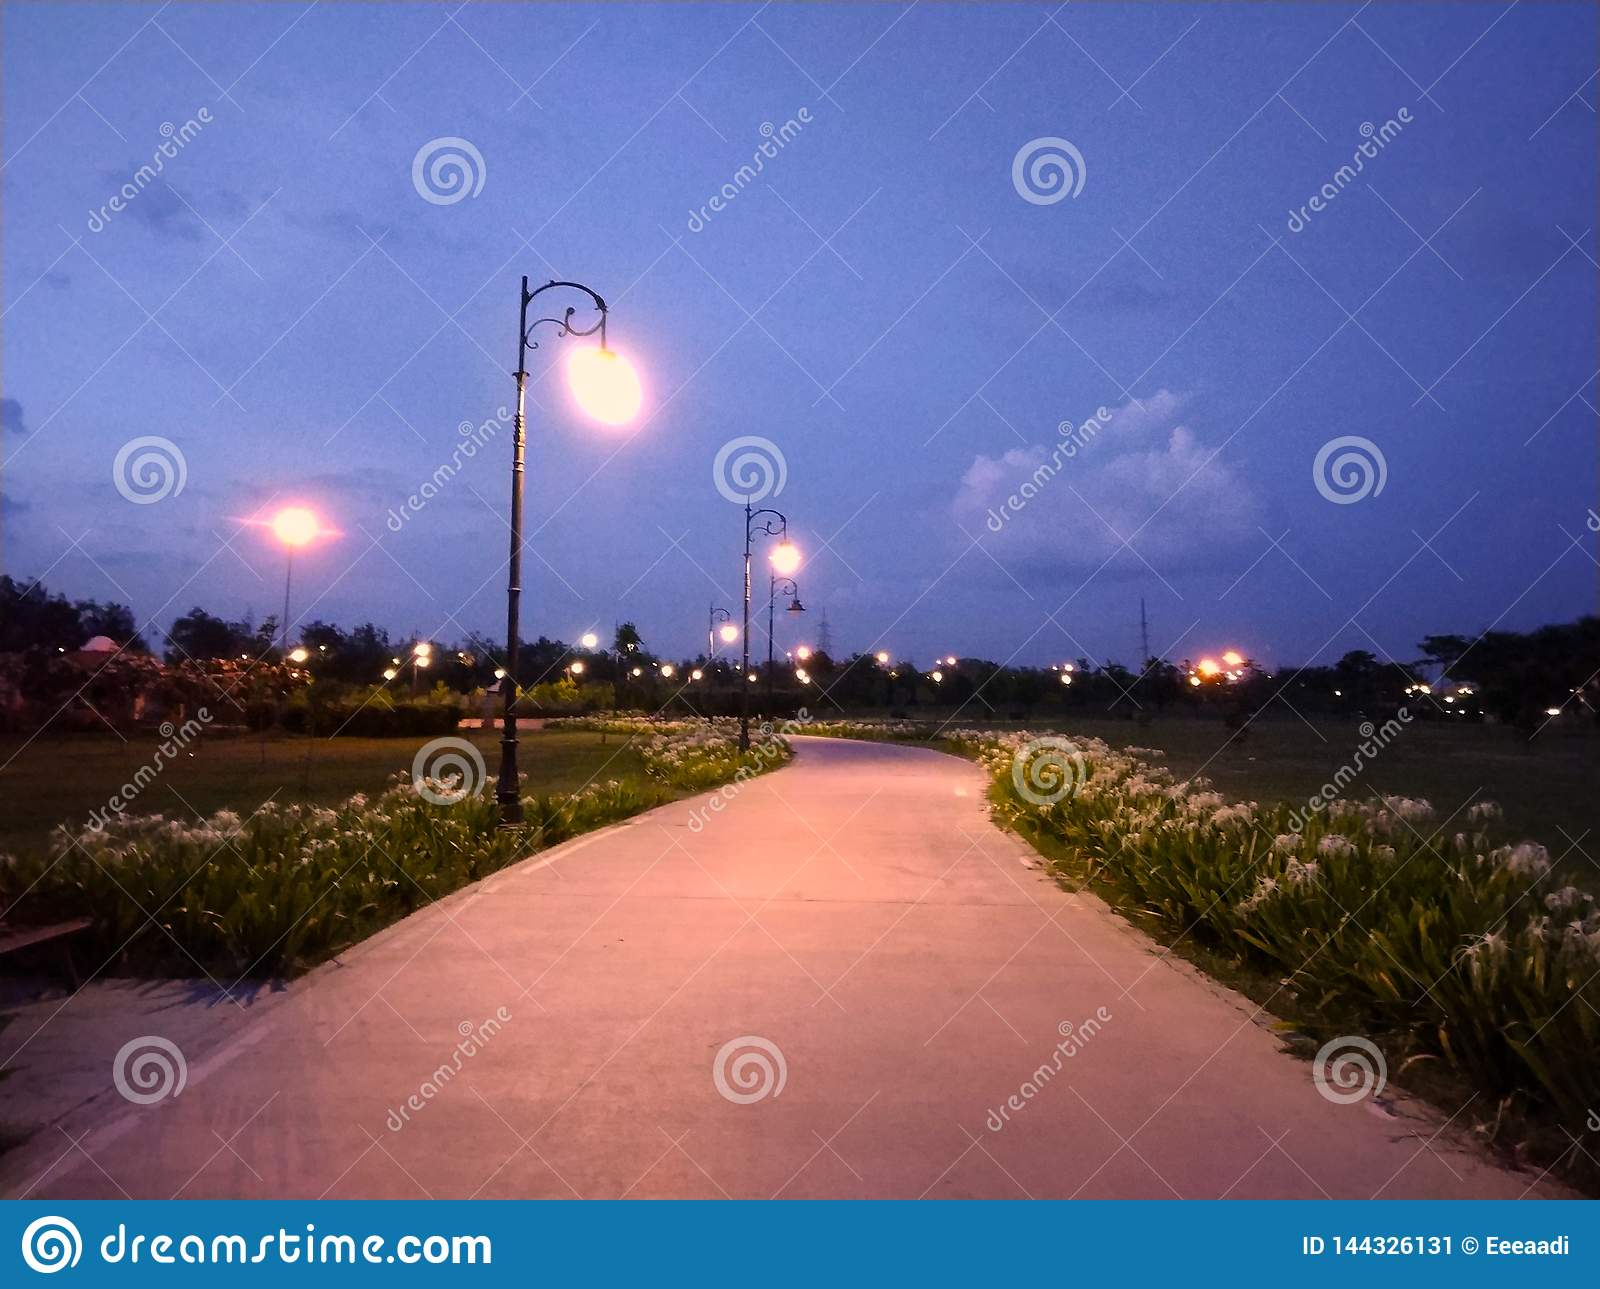 Outdoor Park with street light and path way.